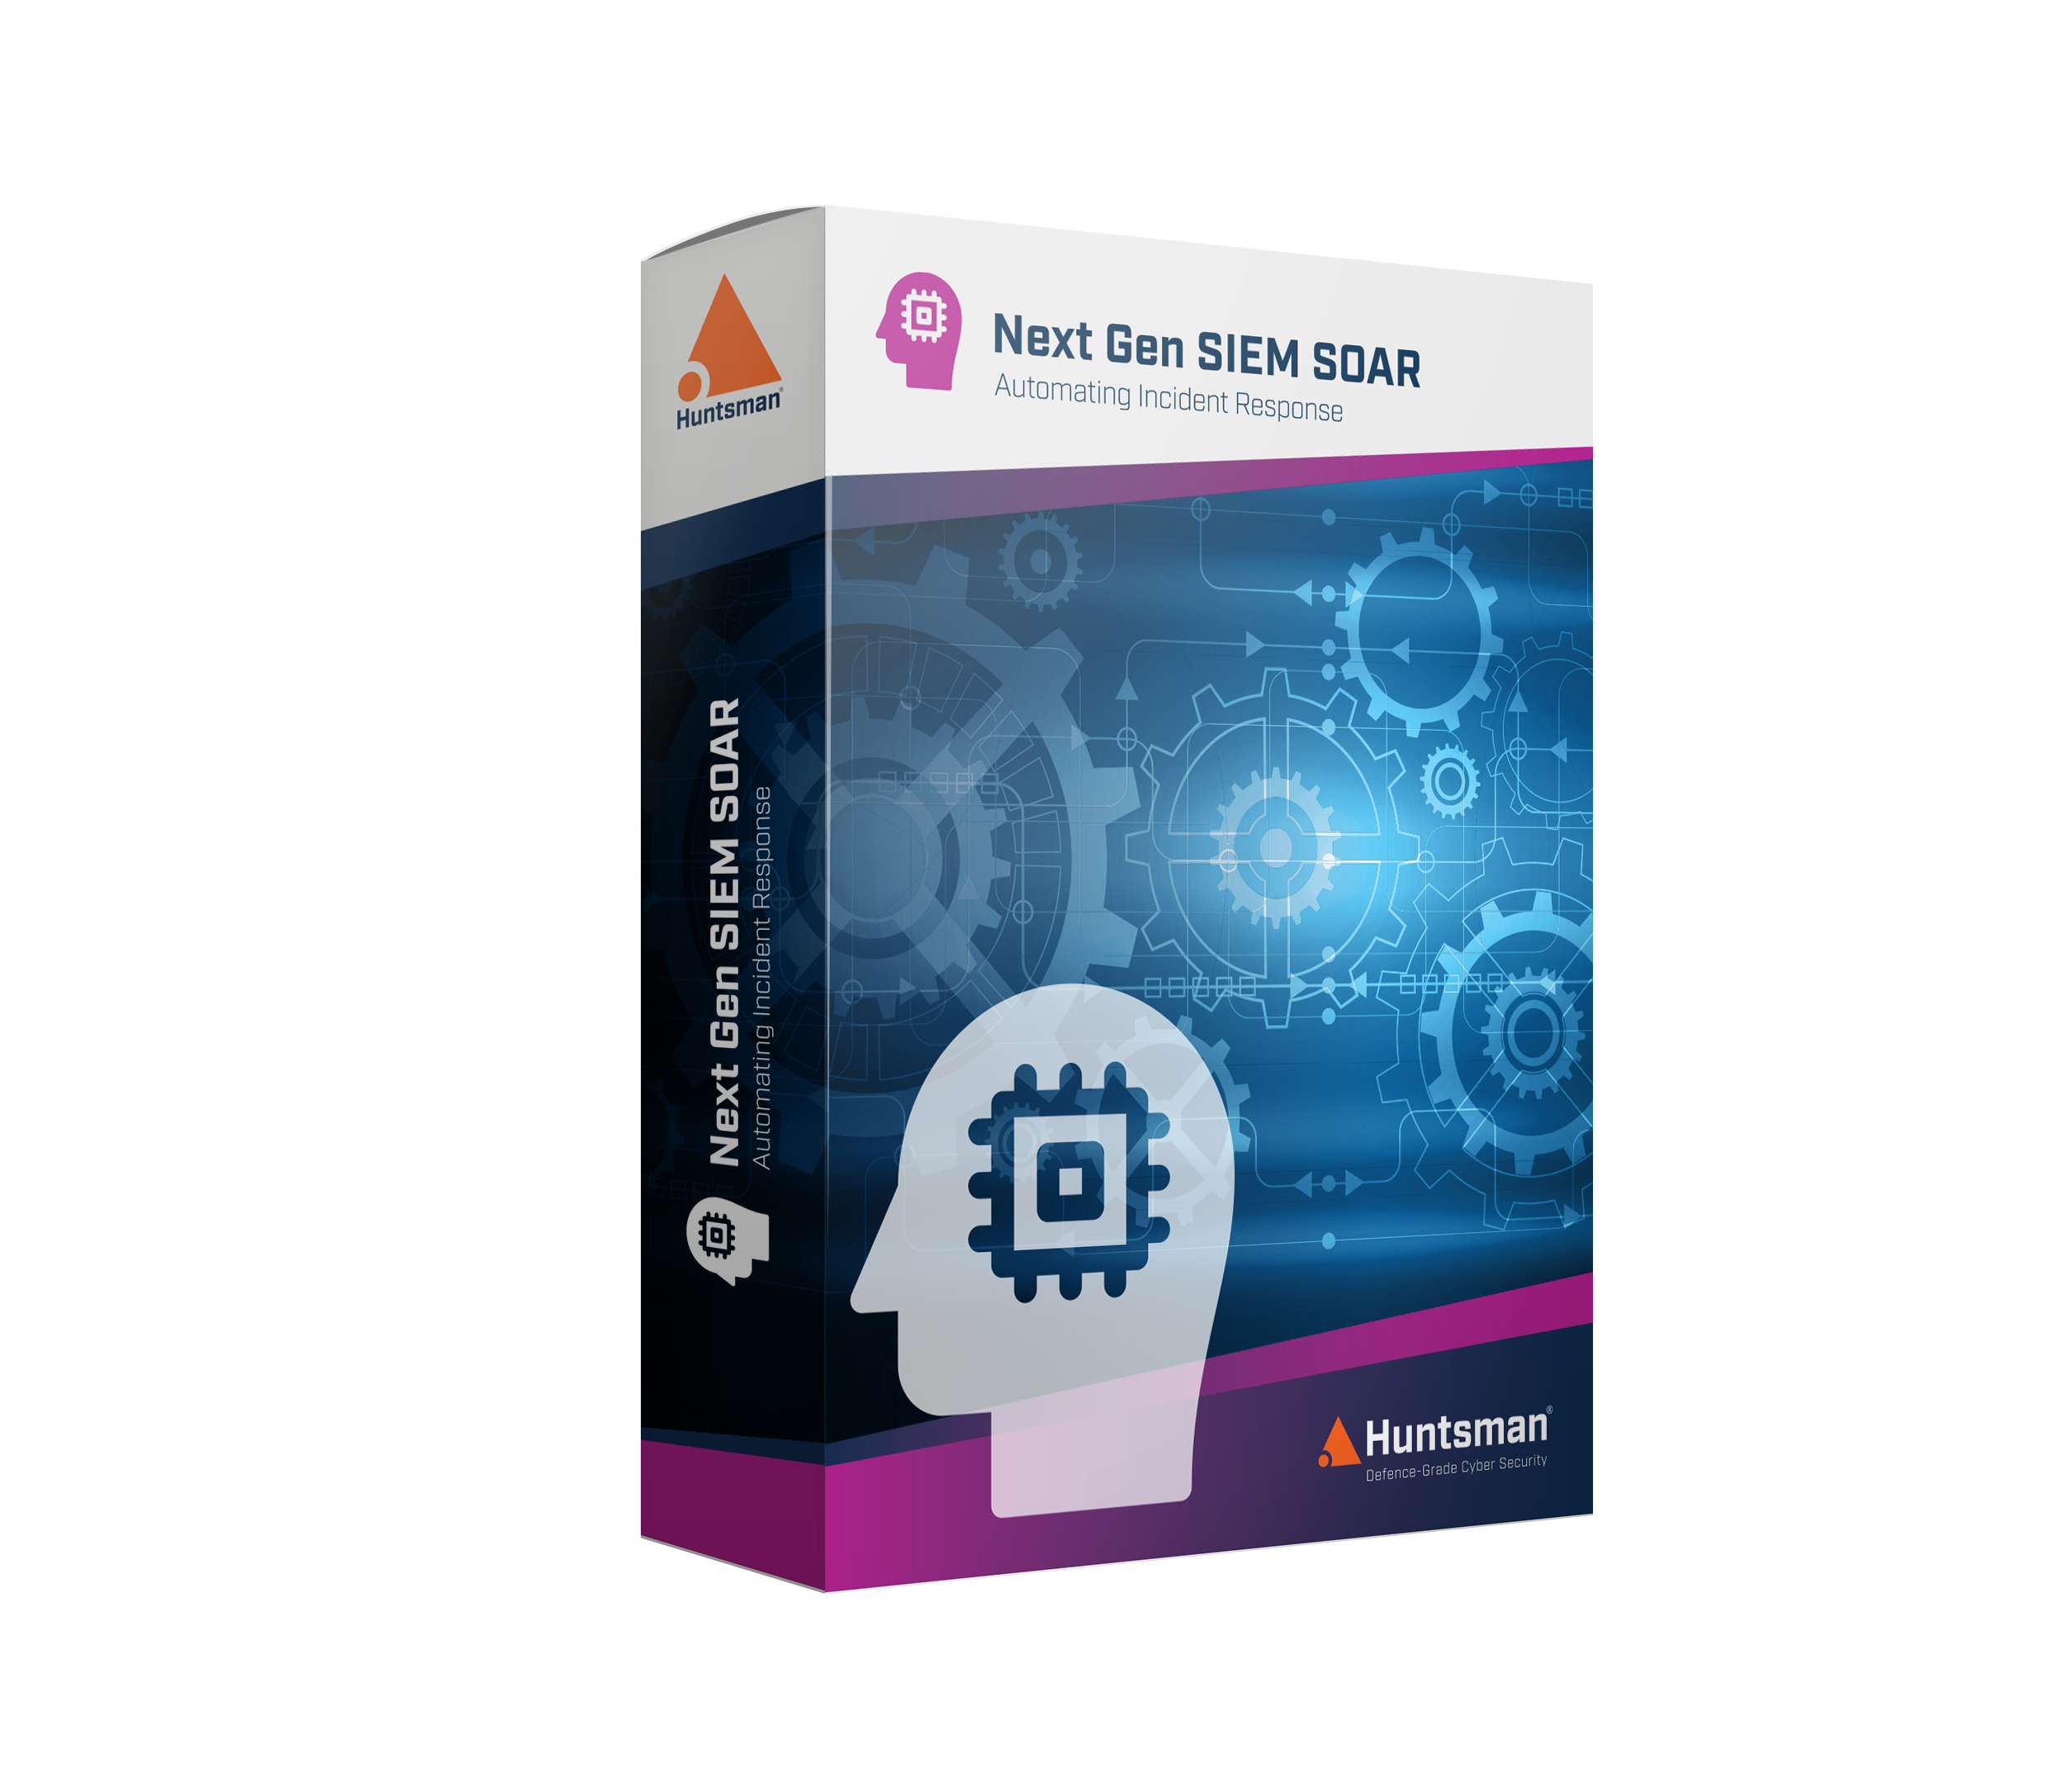 Next Gen SIEM SOAR product combines SIEM and automated incident response